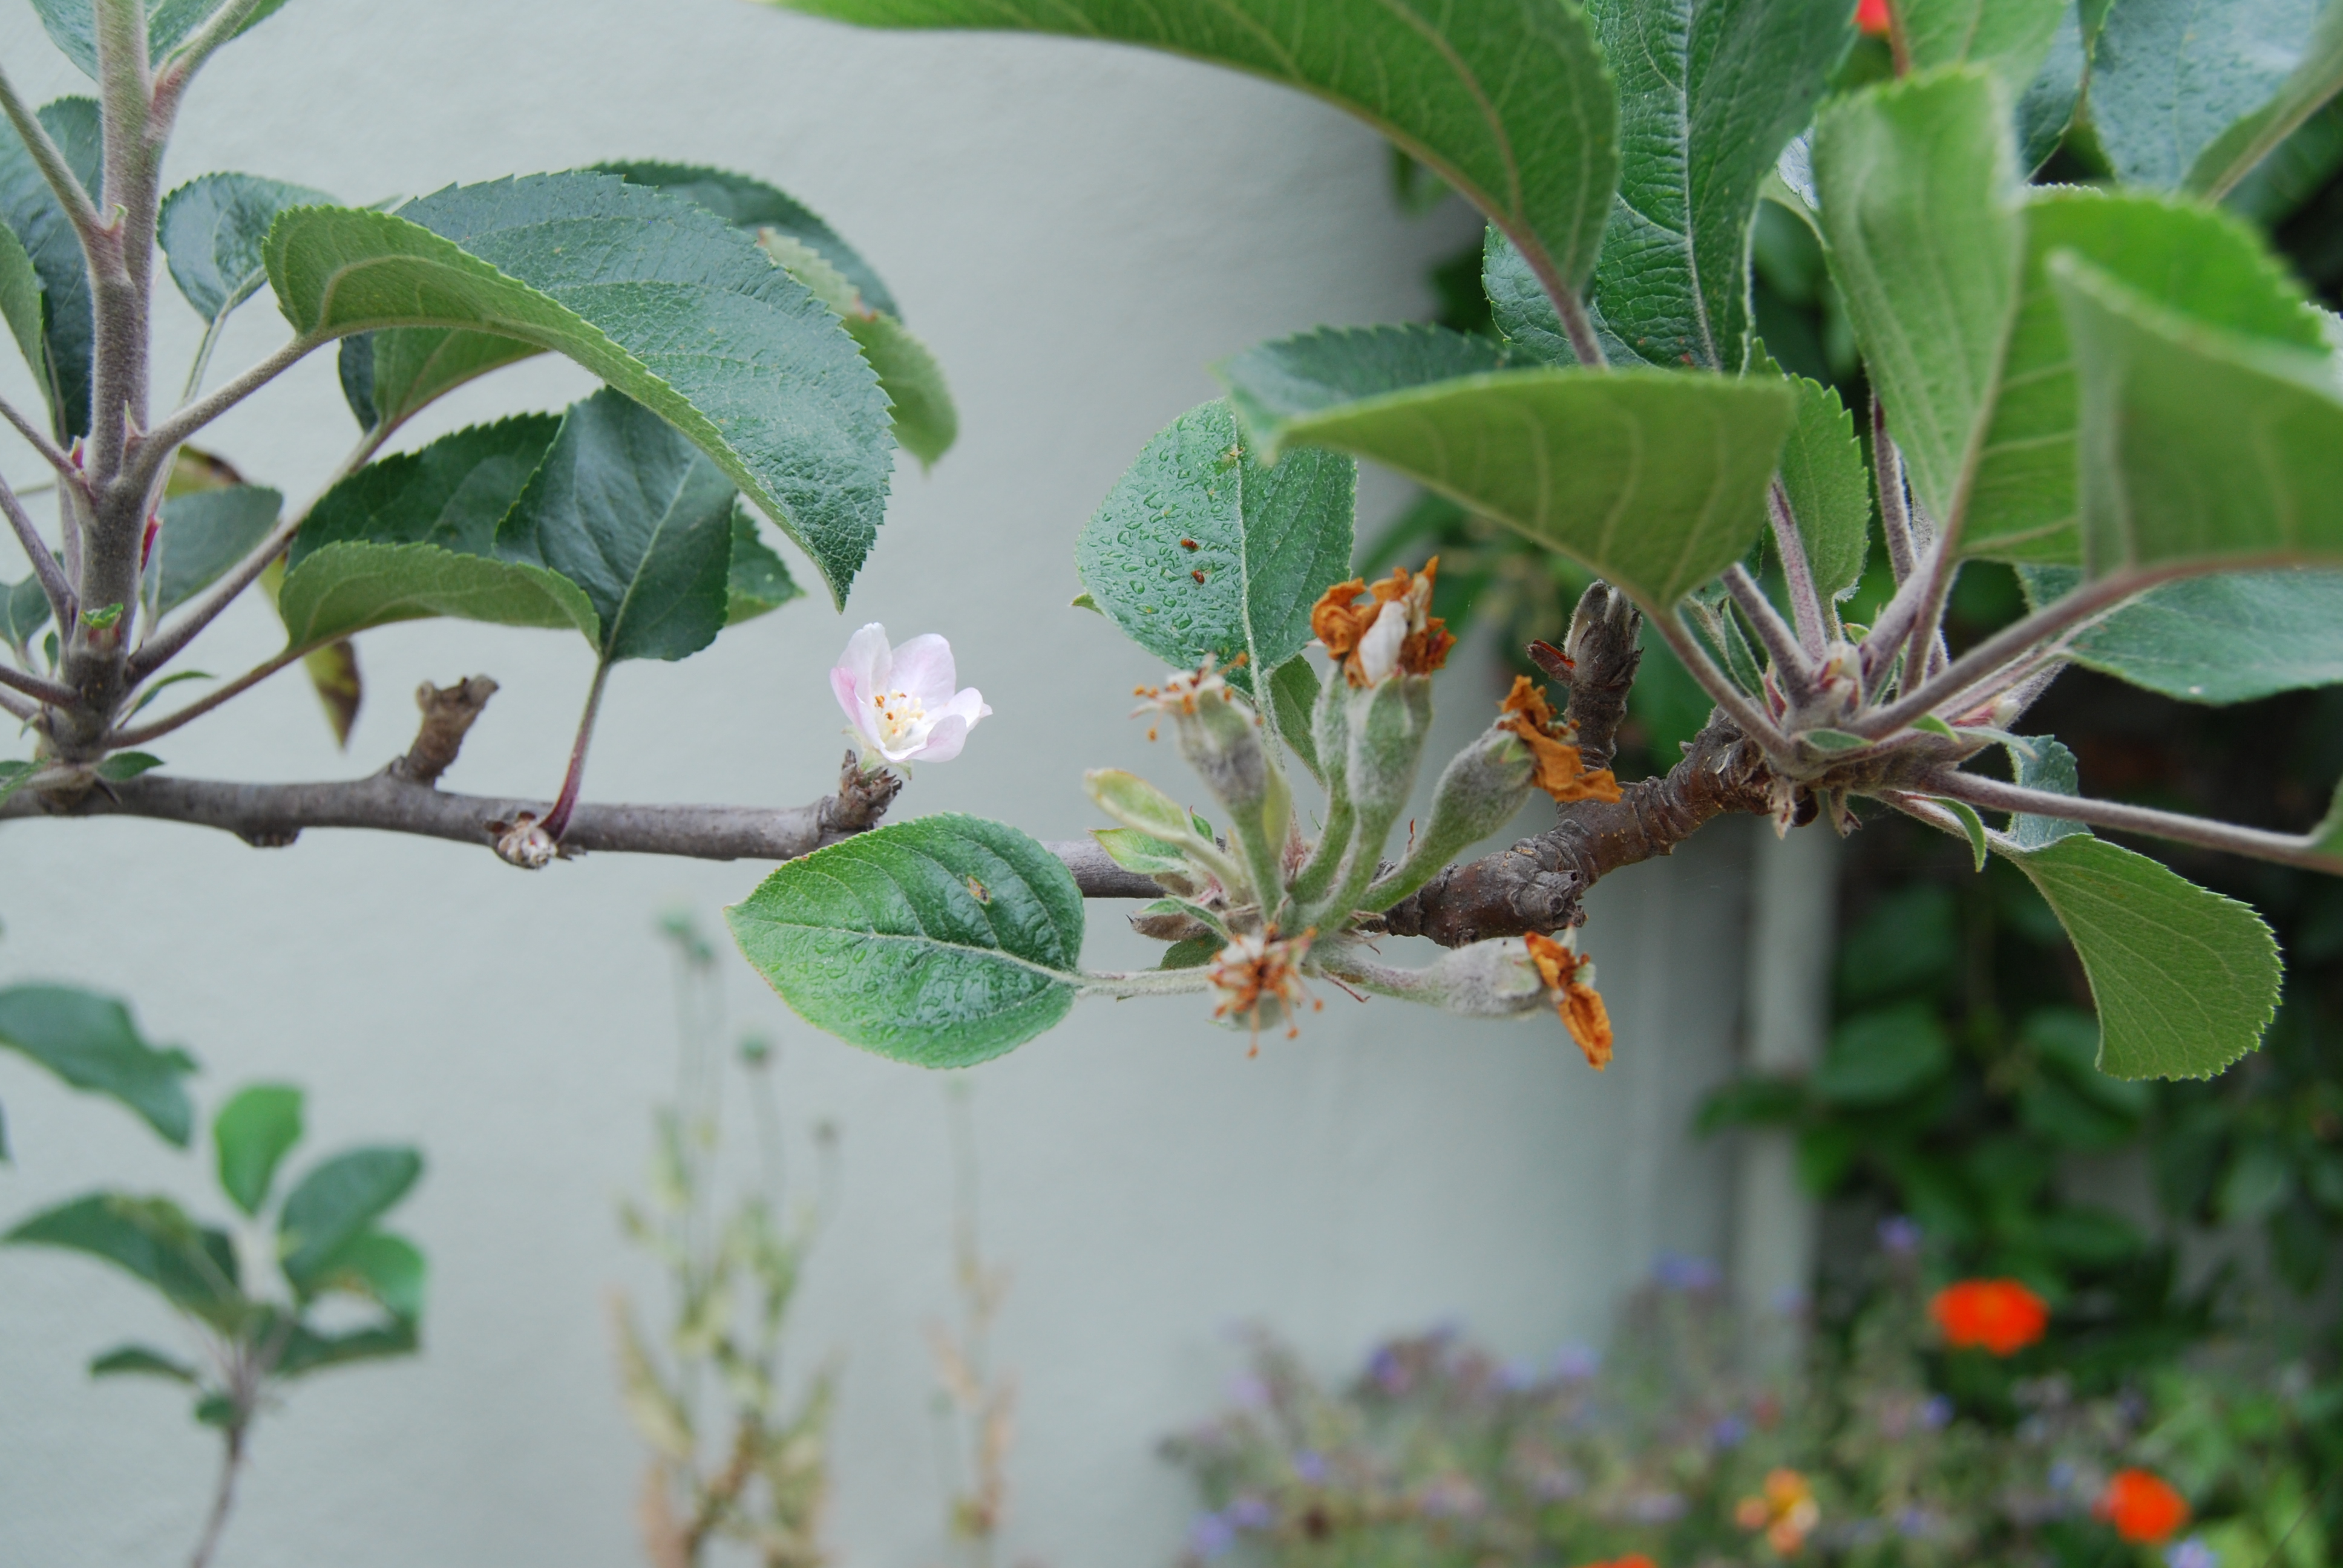 Fuji apples flowering and setting fruit. It brings hope for a delicious fall crop.